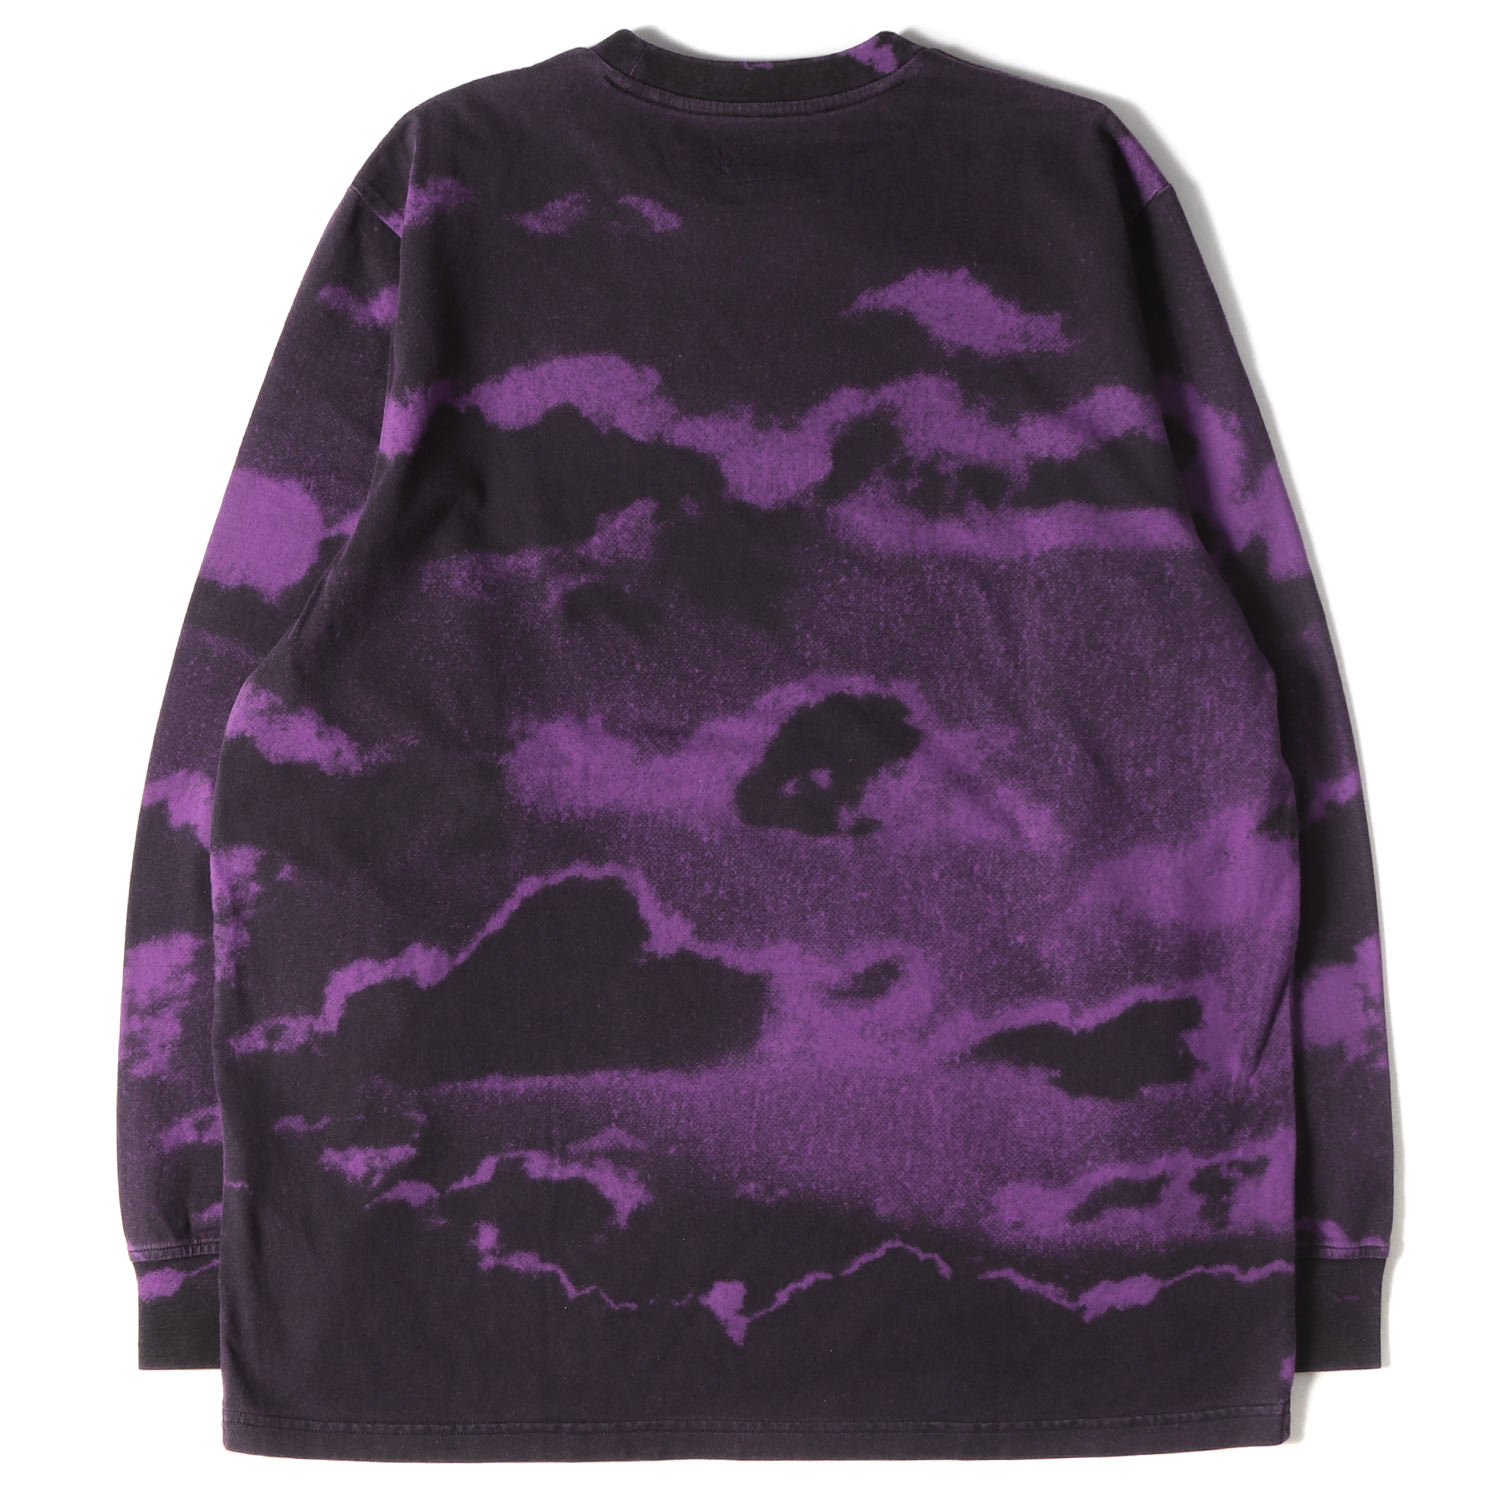 19SS 全面クラウドプリントロングスリーブTシャツ / トップ(Clouds L/S Top)